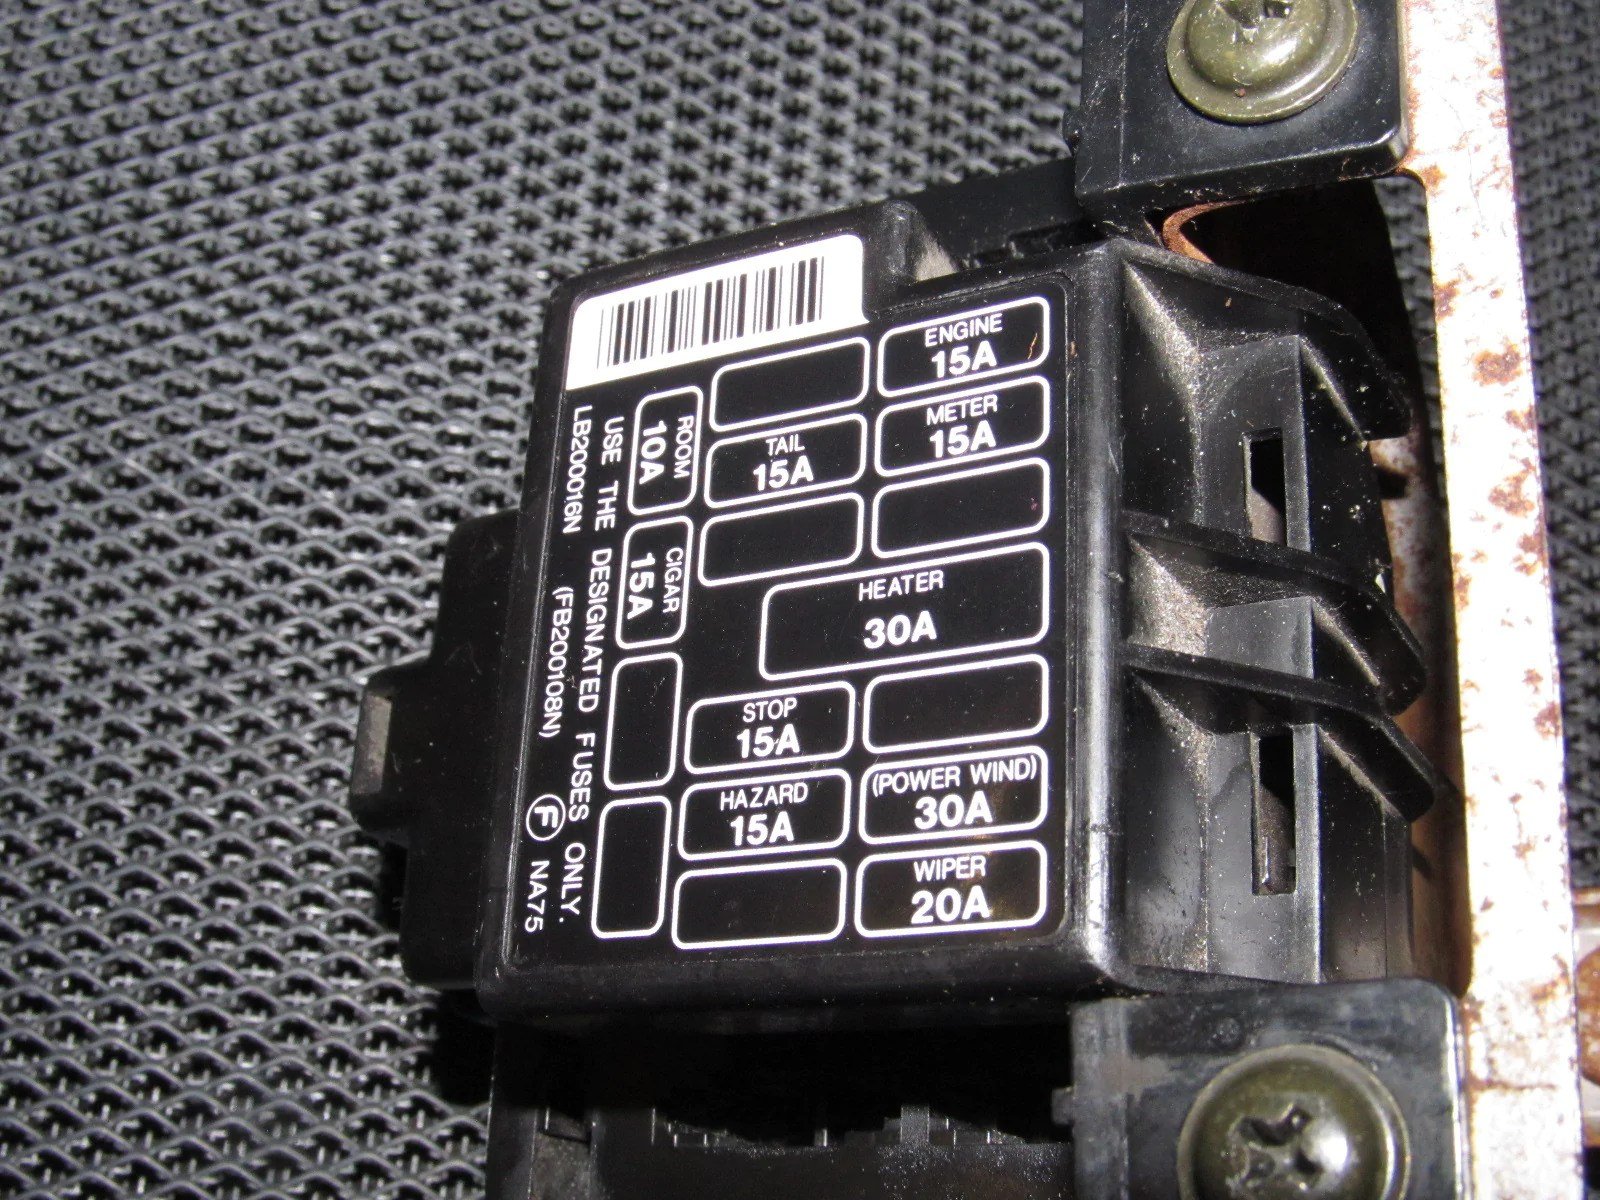 hight resolution of miata fuse box electrical wiring diagram94 95 96 97 mazda miata oem interior fuse box